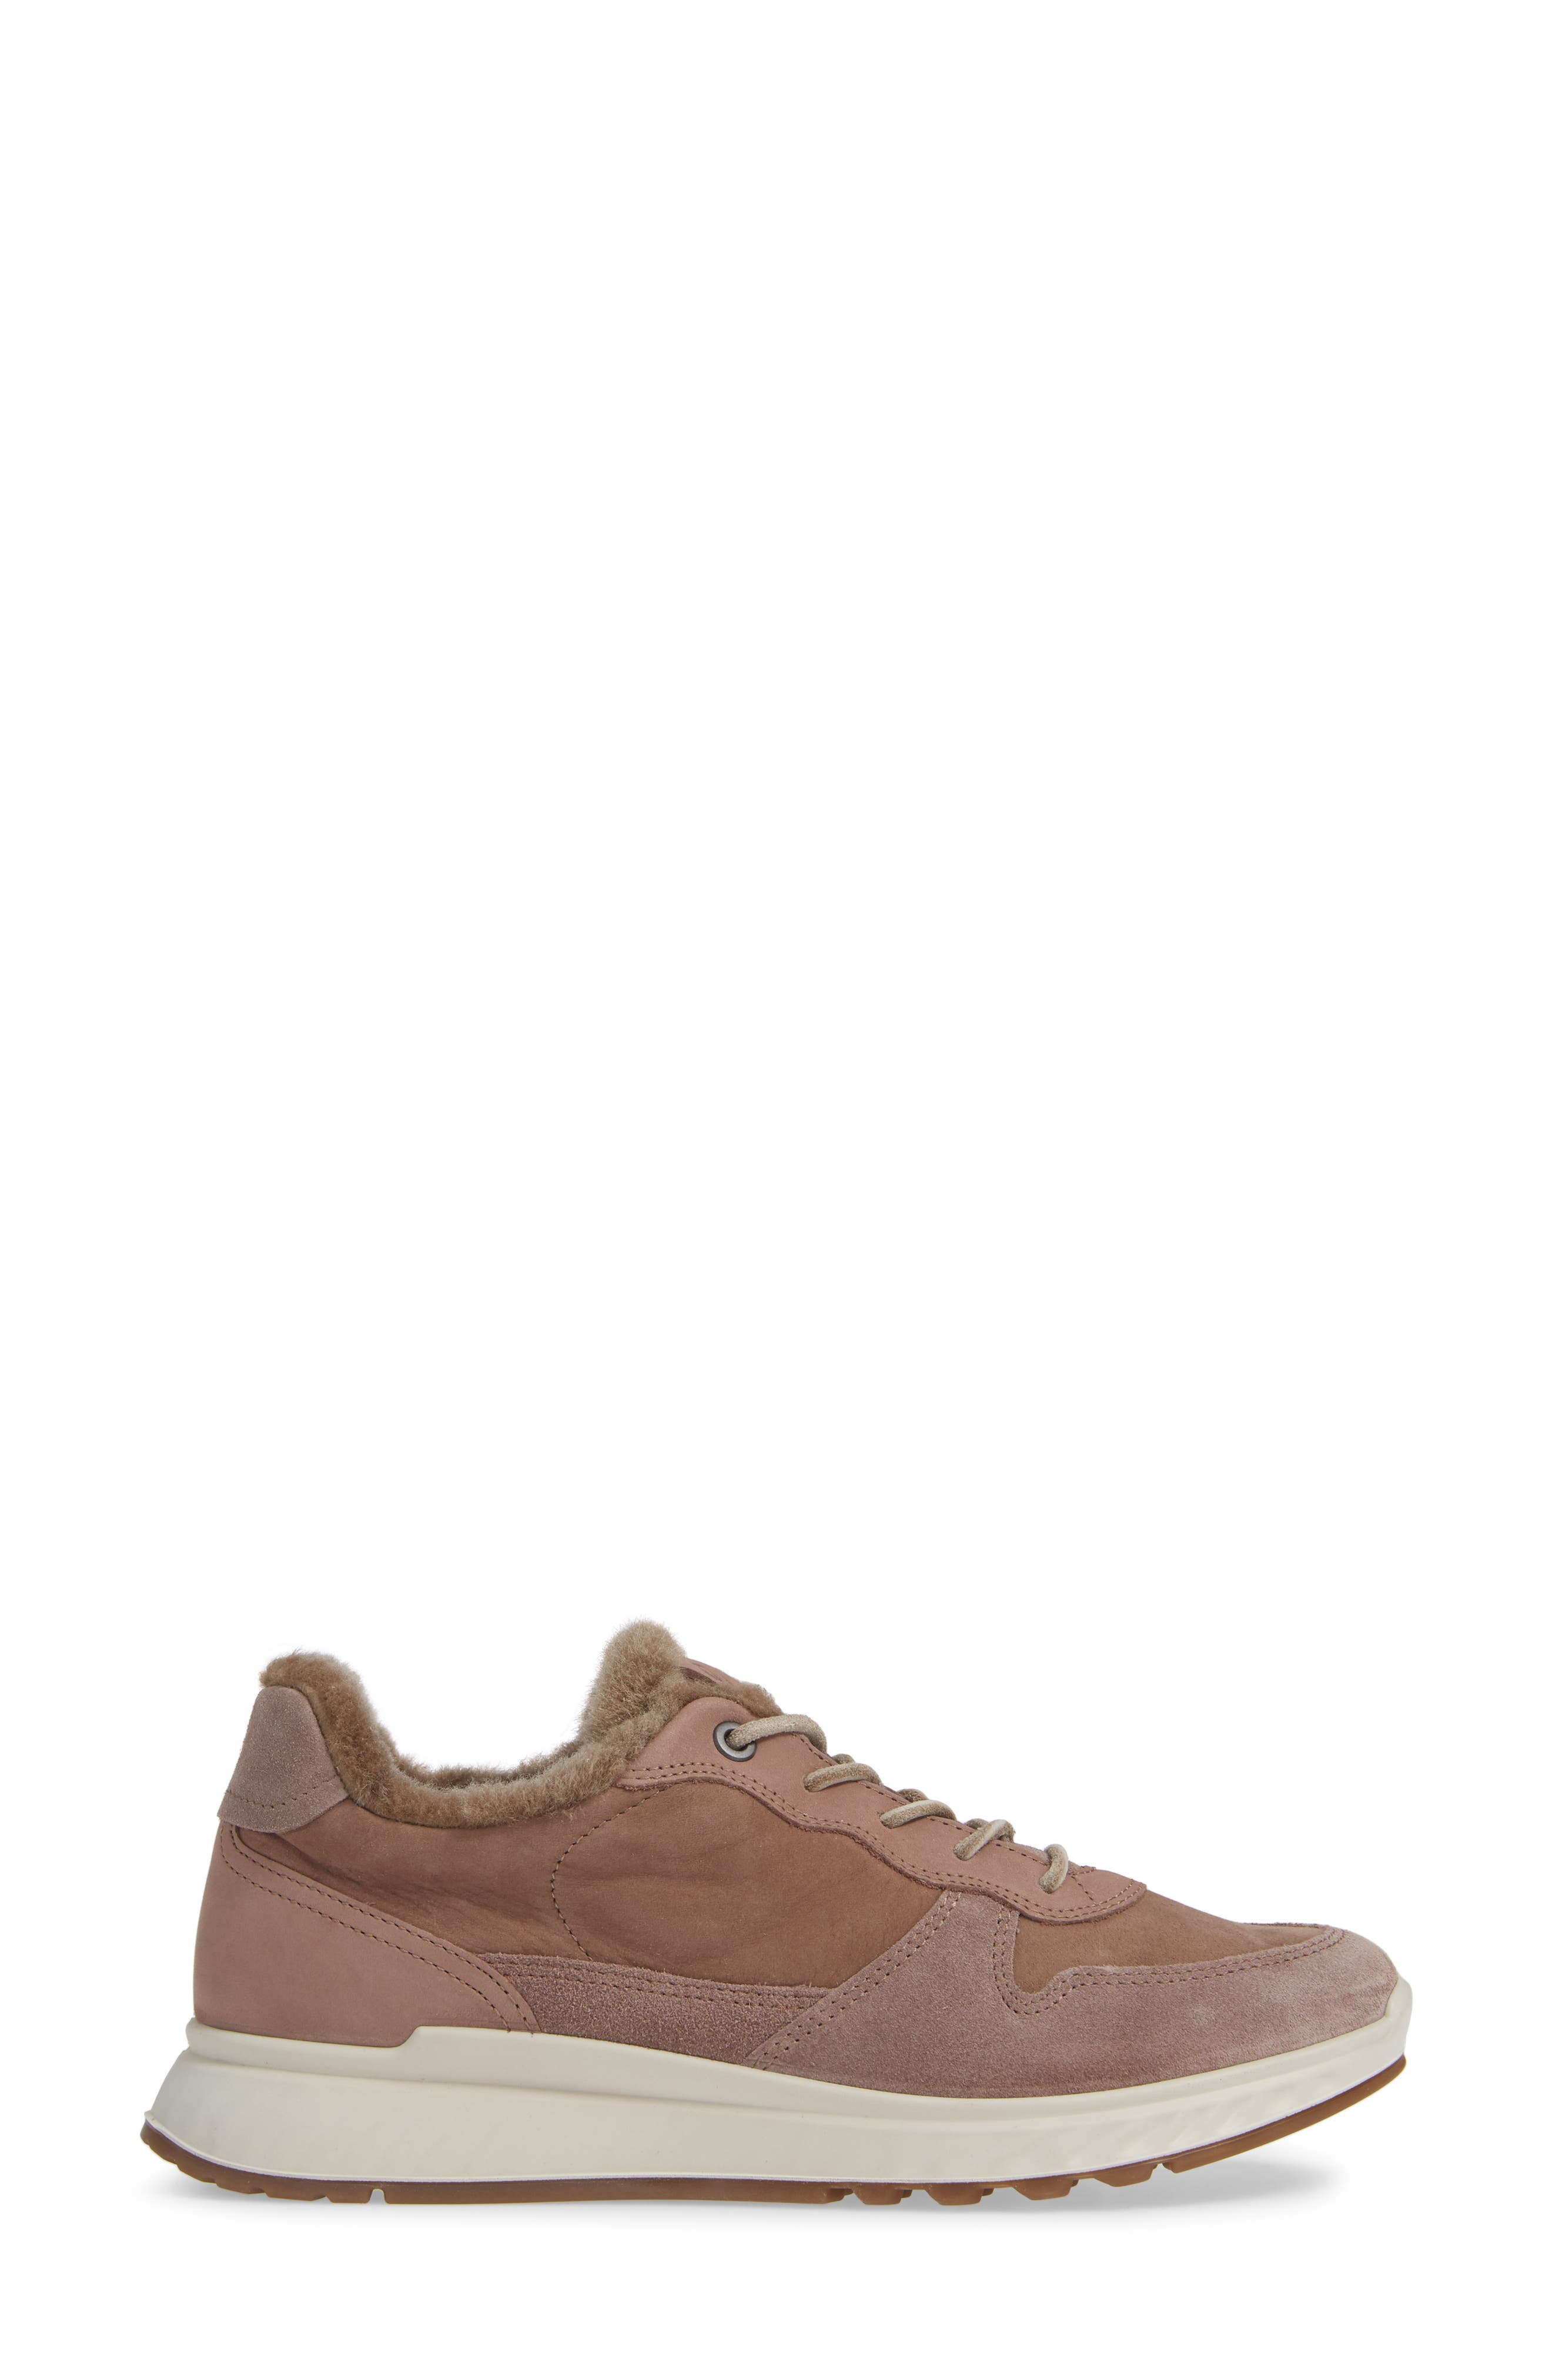 ST1 Genuine Shearling Sneaker,                             Alternate thumbnail 3, color,                             DEEP TAUPE NUBUCK LEATHER